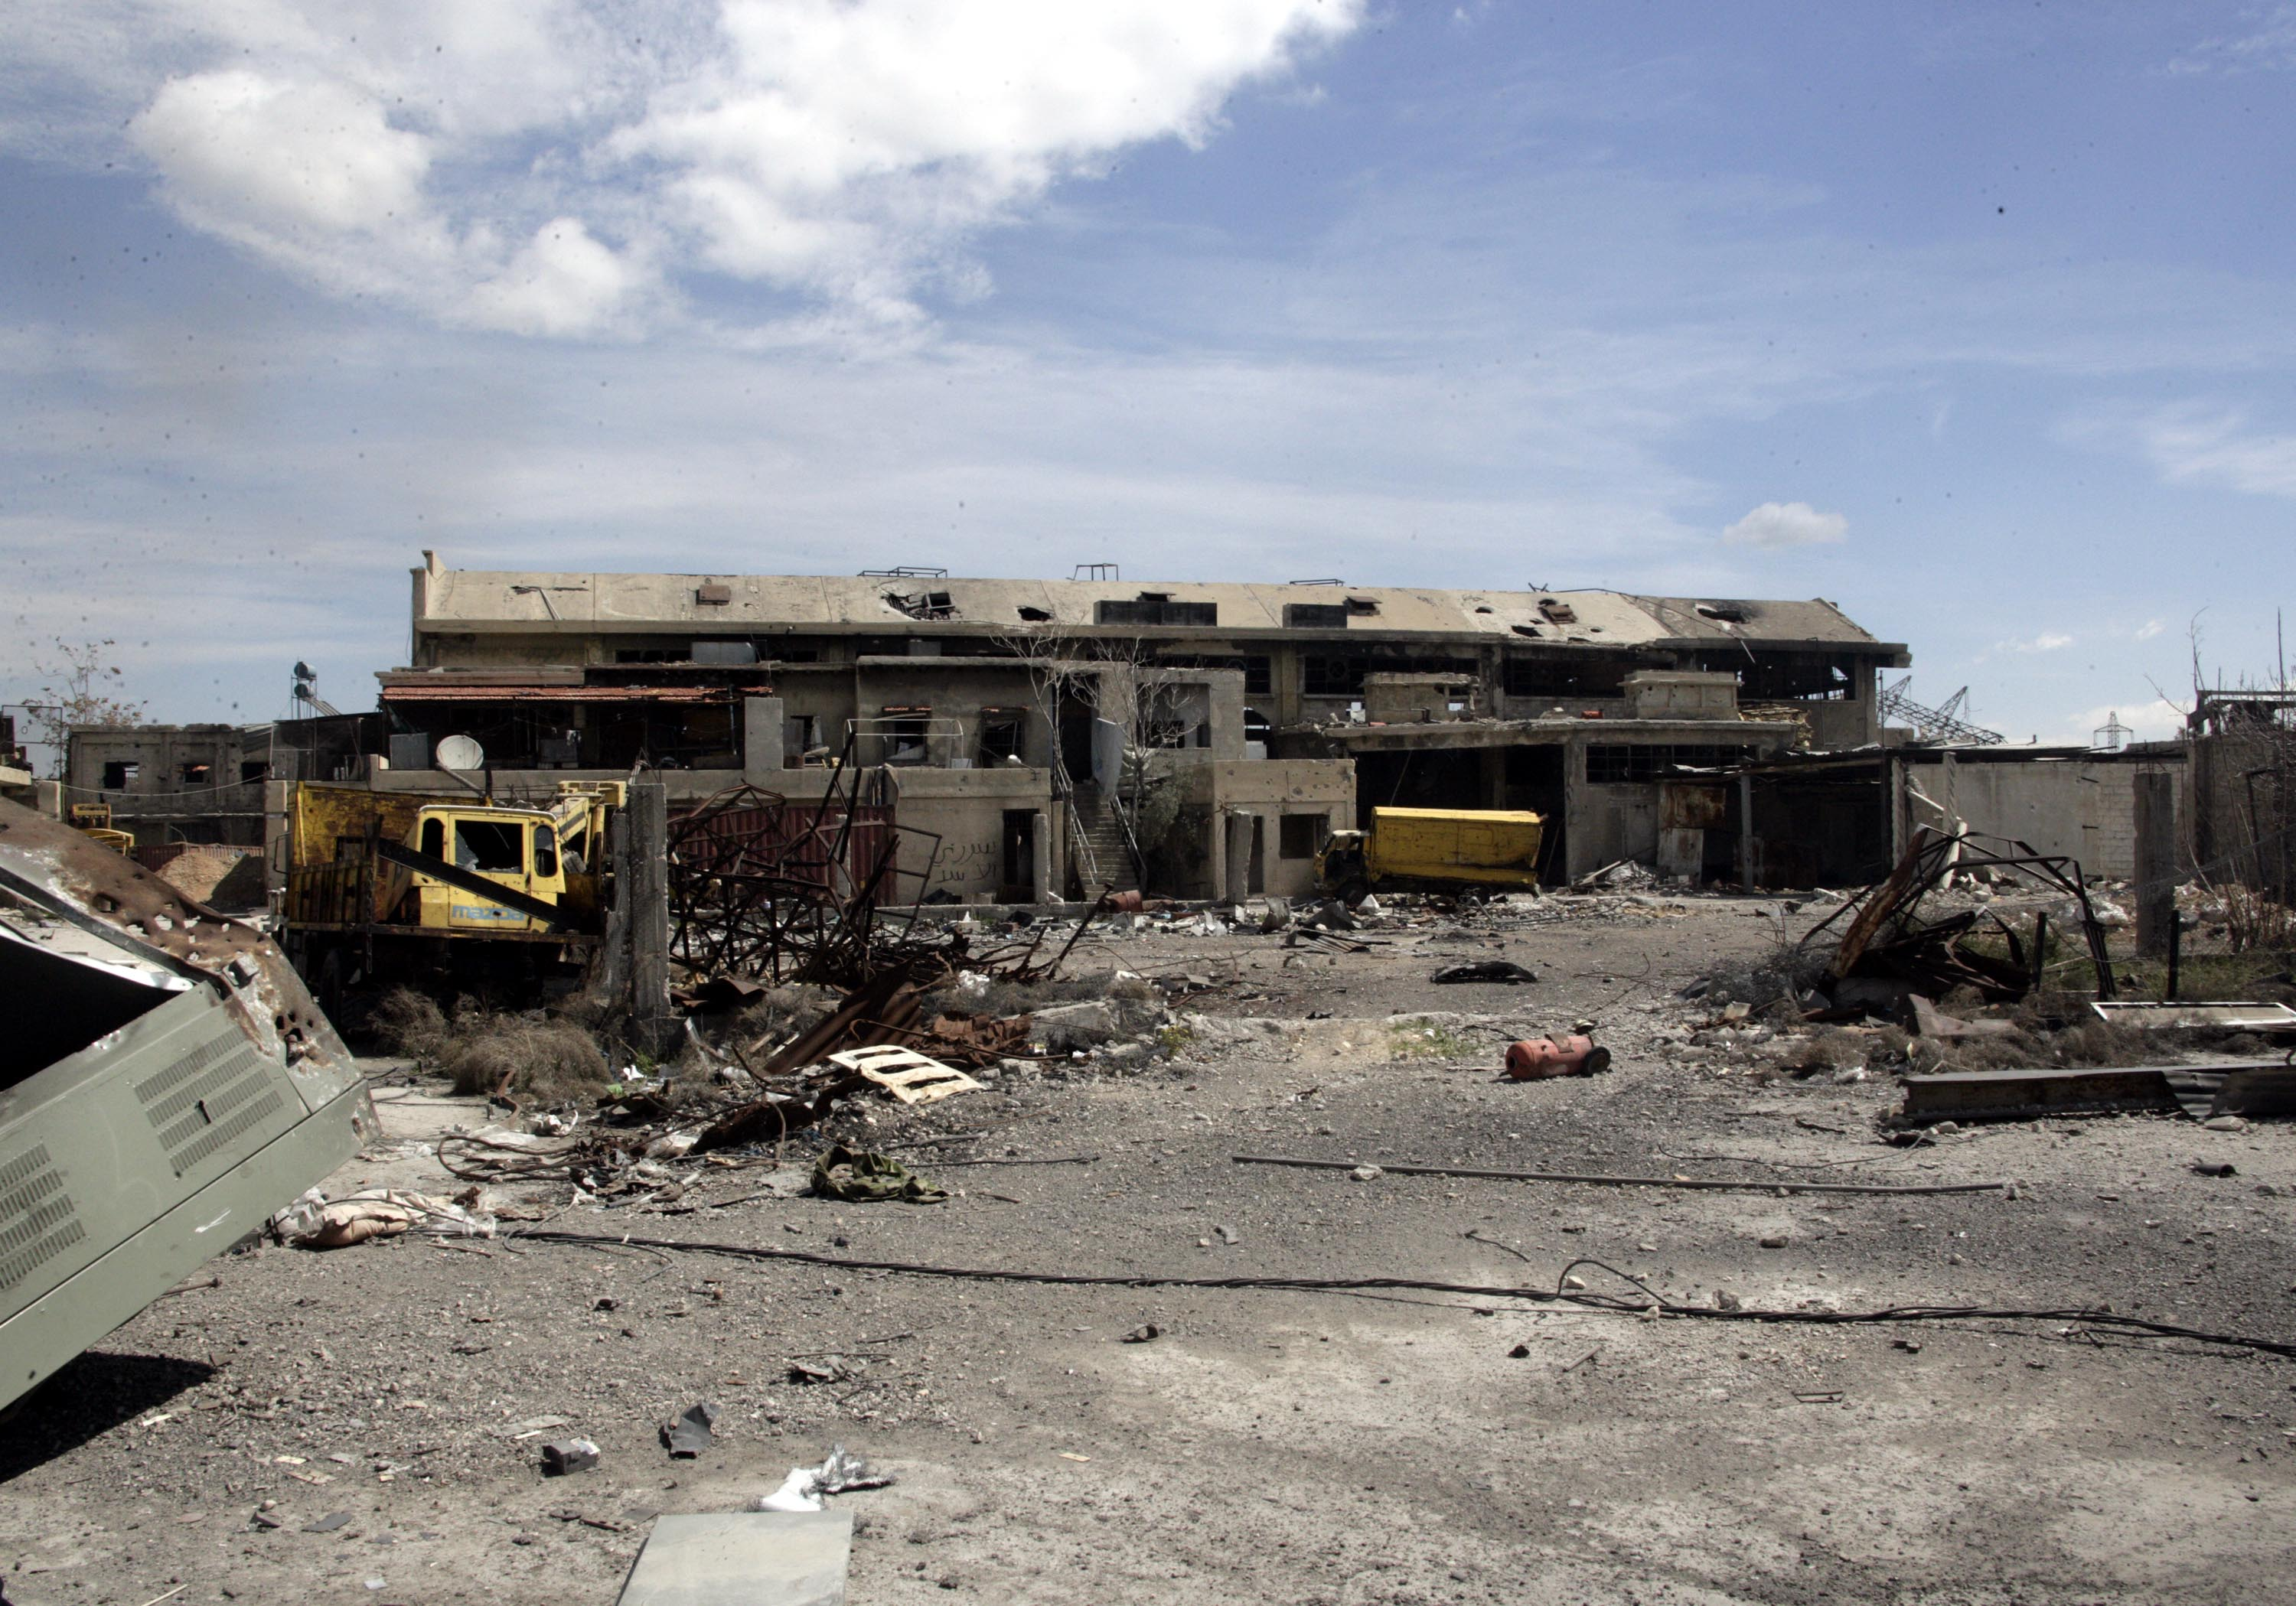 Photo taken on March 20, 2017, shows a scene of destruction at the Abassyieen bus station in the east of Damascus, capital of Syria, as rebel forces apply pressure forces loyal to President Bashar Assad. (Ammar Safarjalani/Xinhua/Sipa USA/TNS)